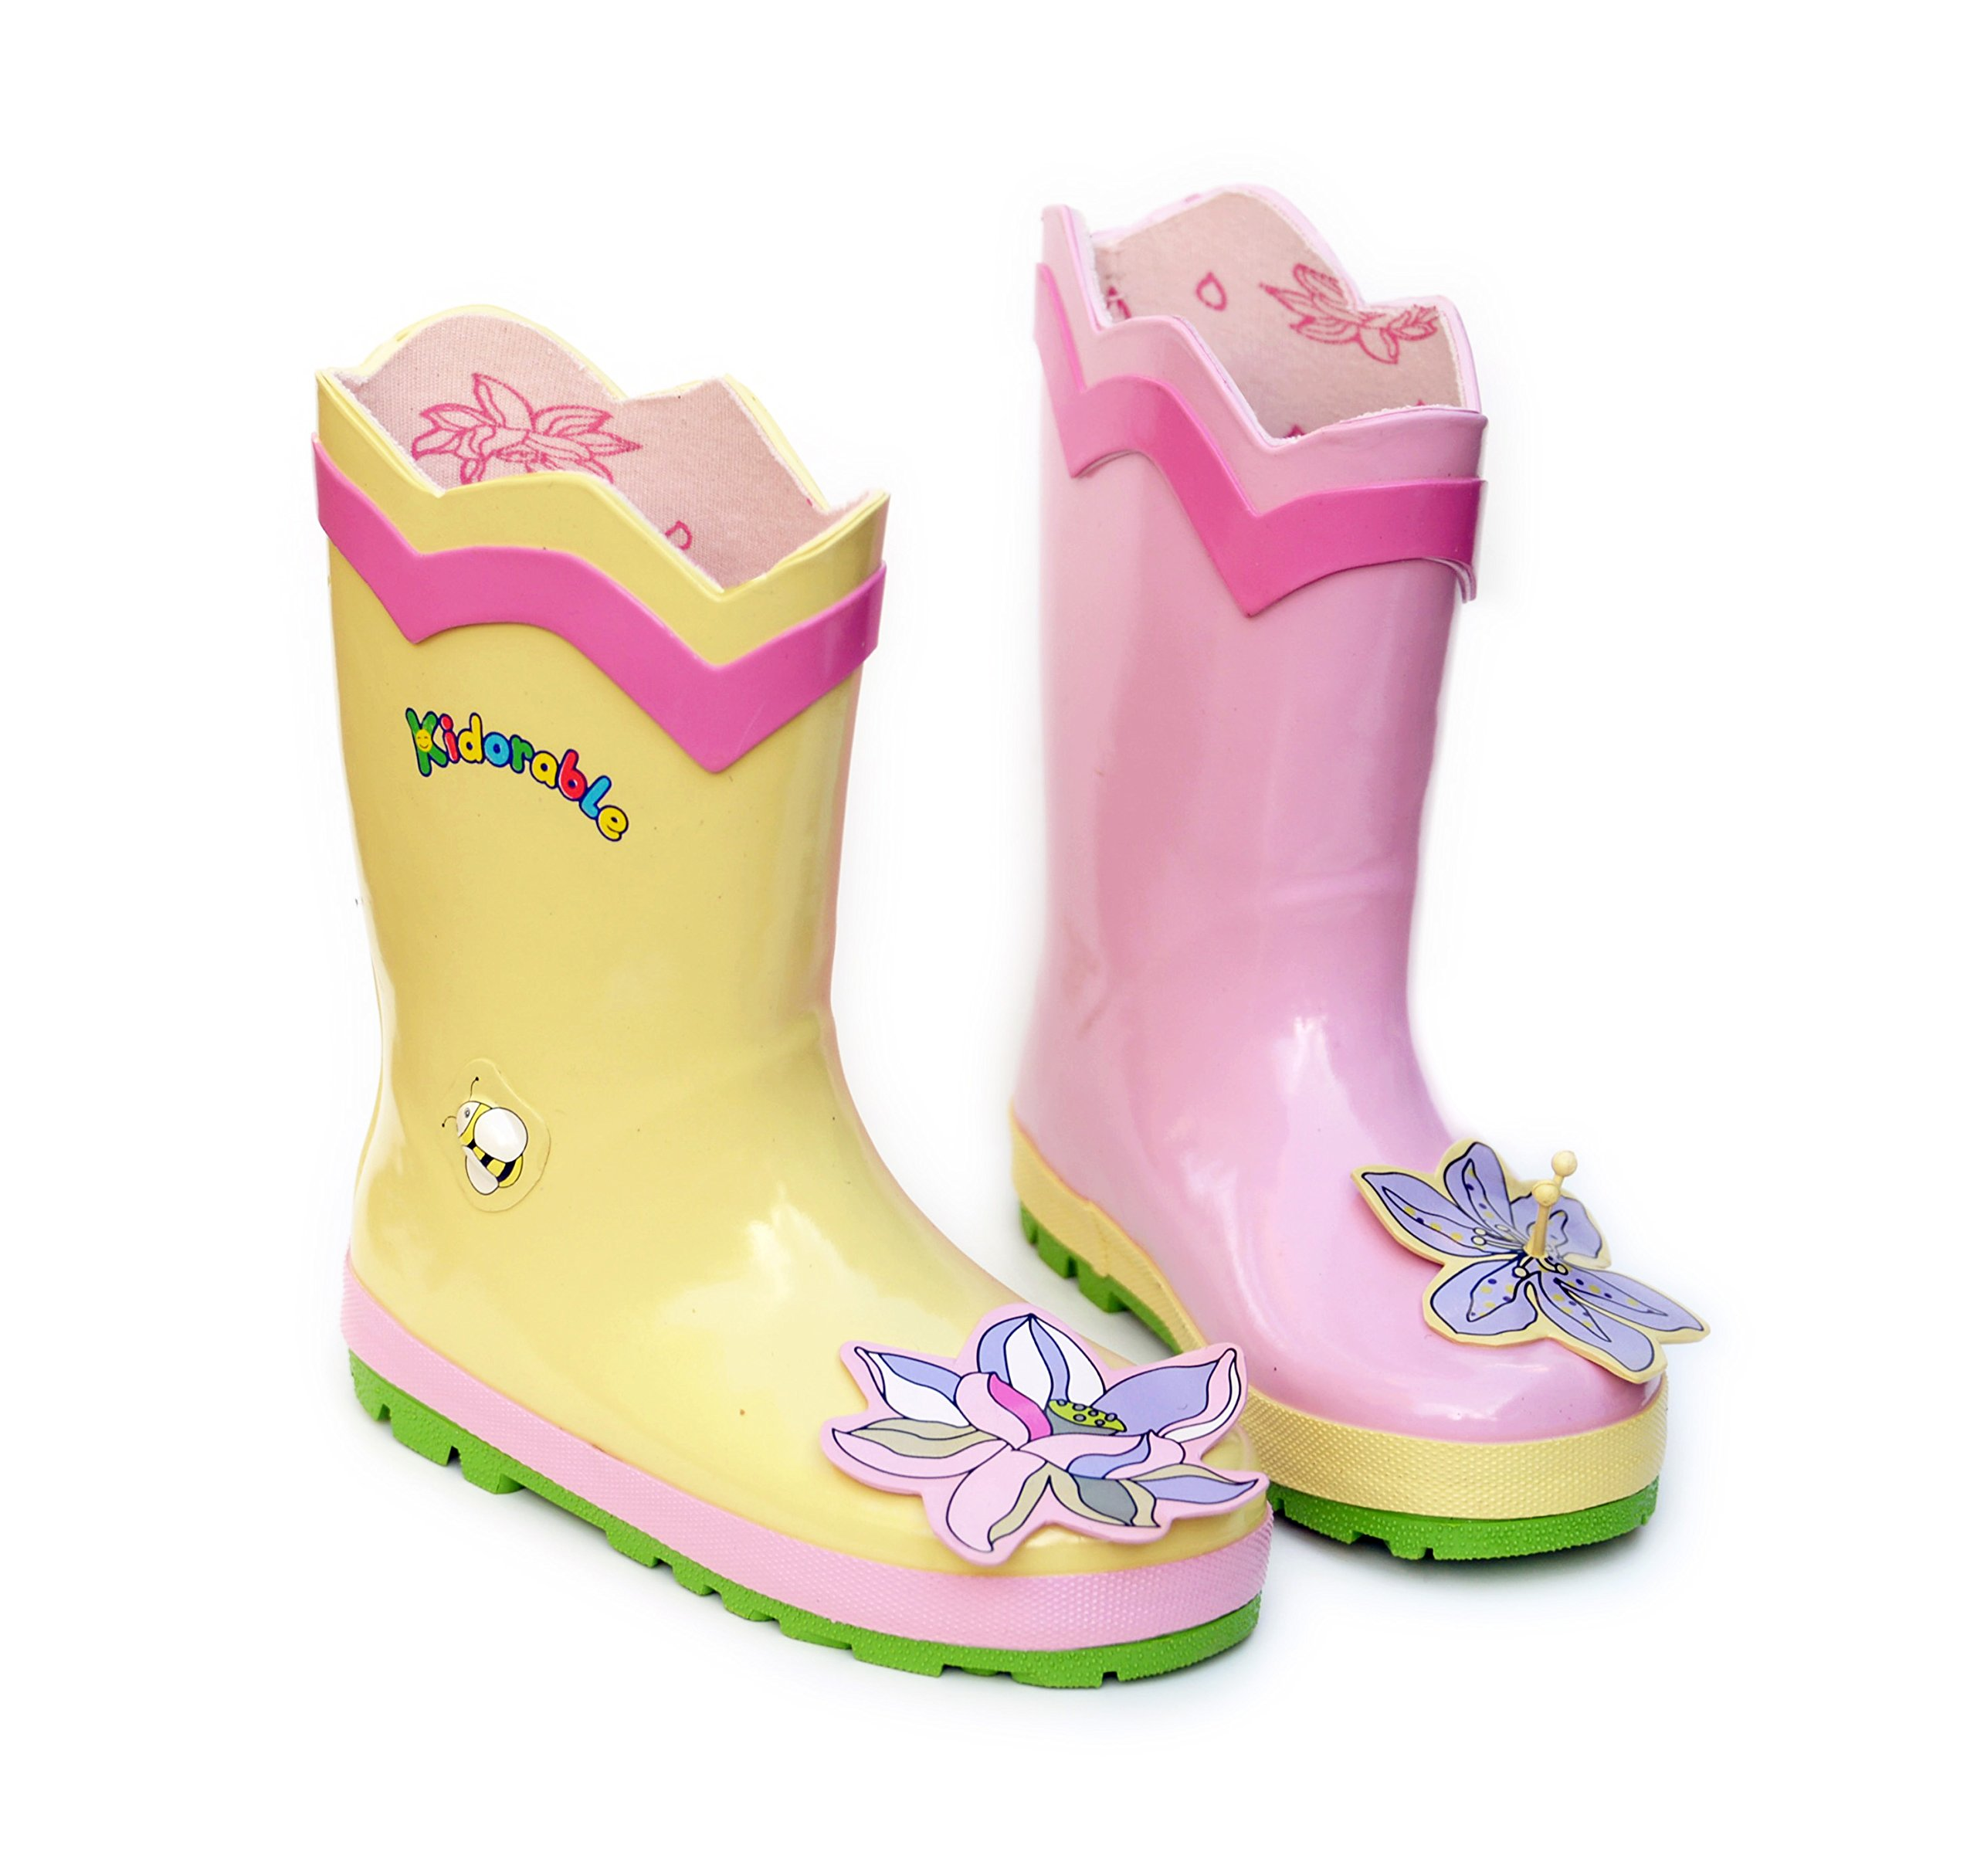 Kidorable Lotus Rain Boot (Toddler/Little Kid), Pink, 7 M US Toddler